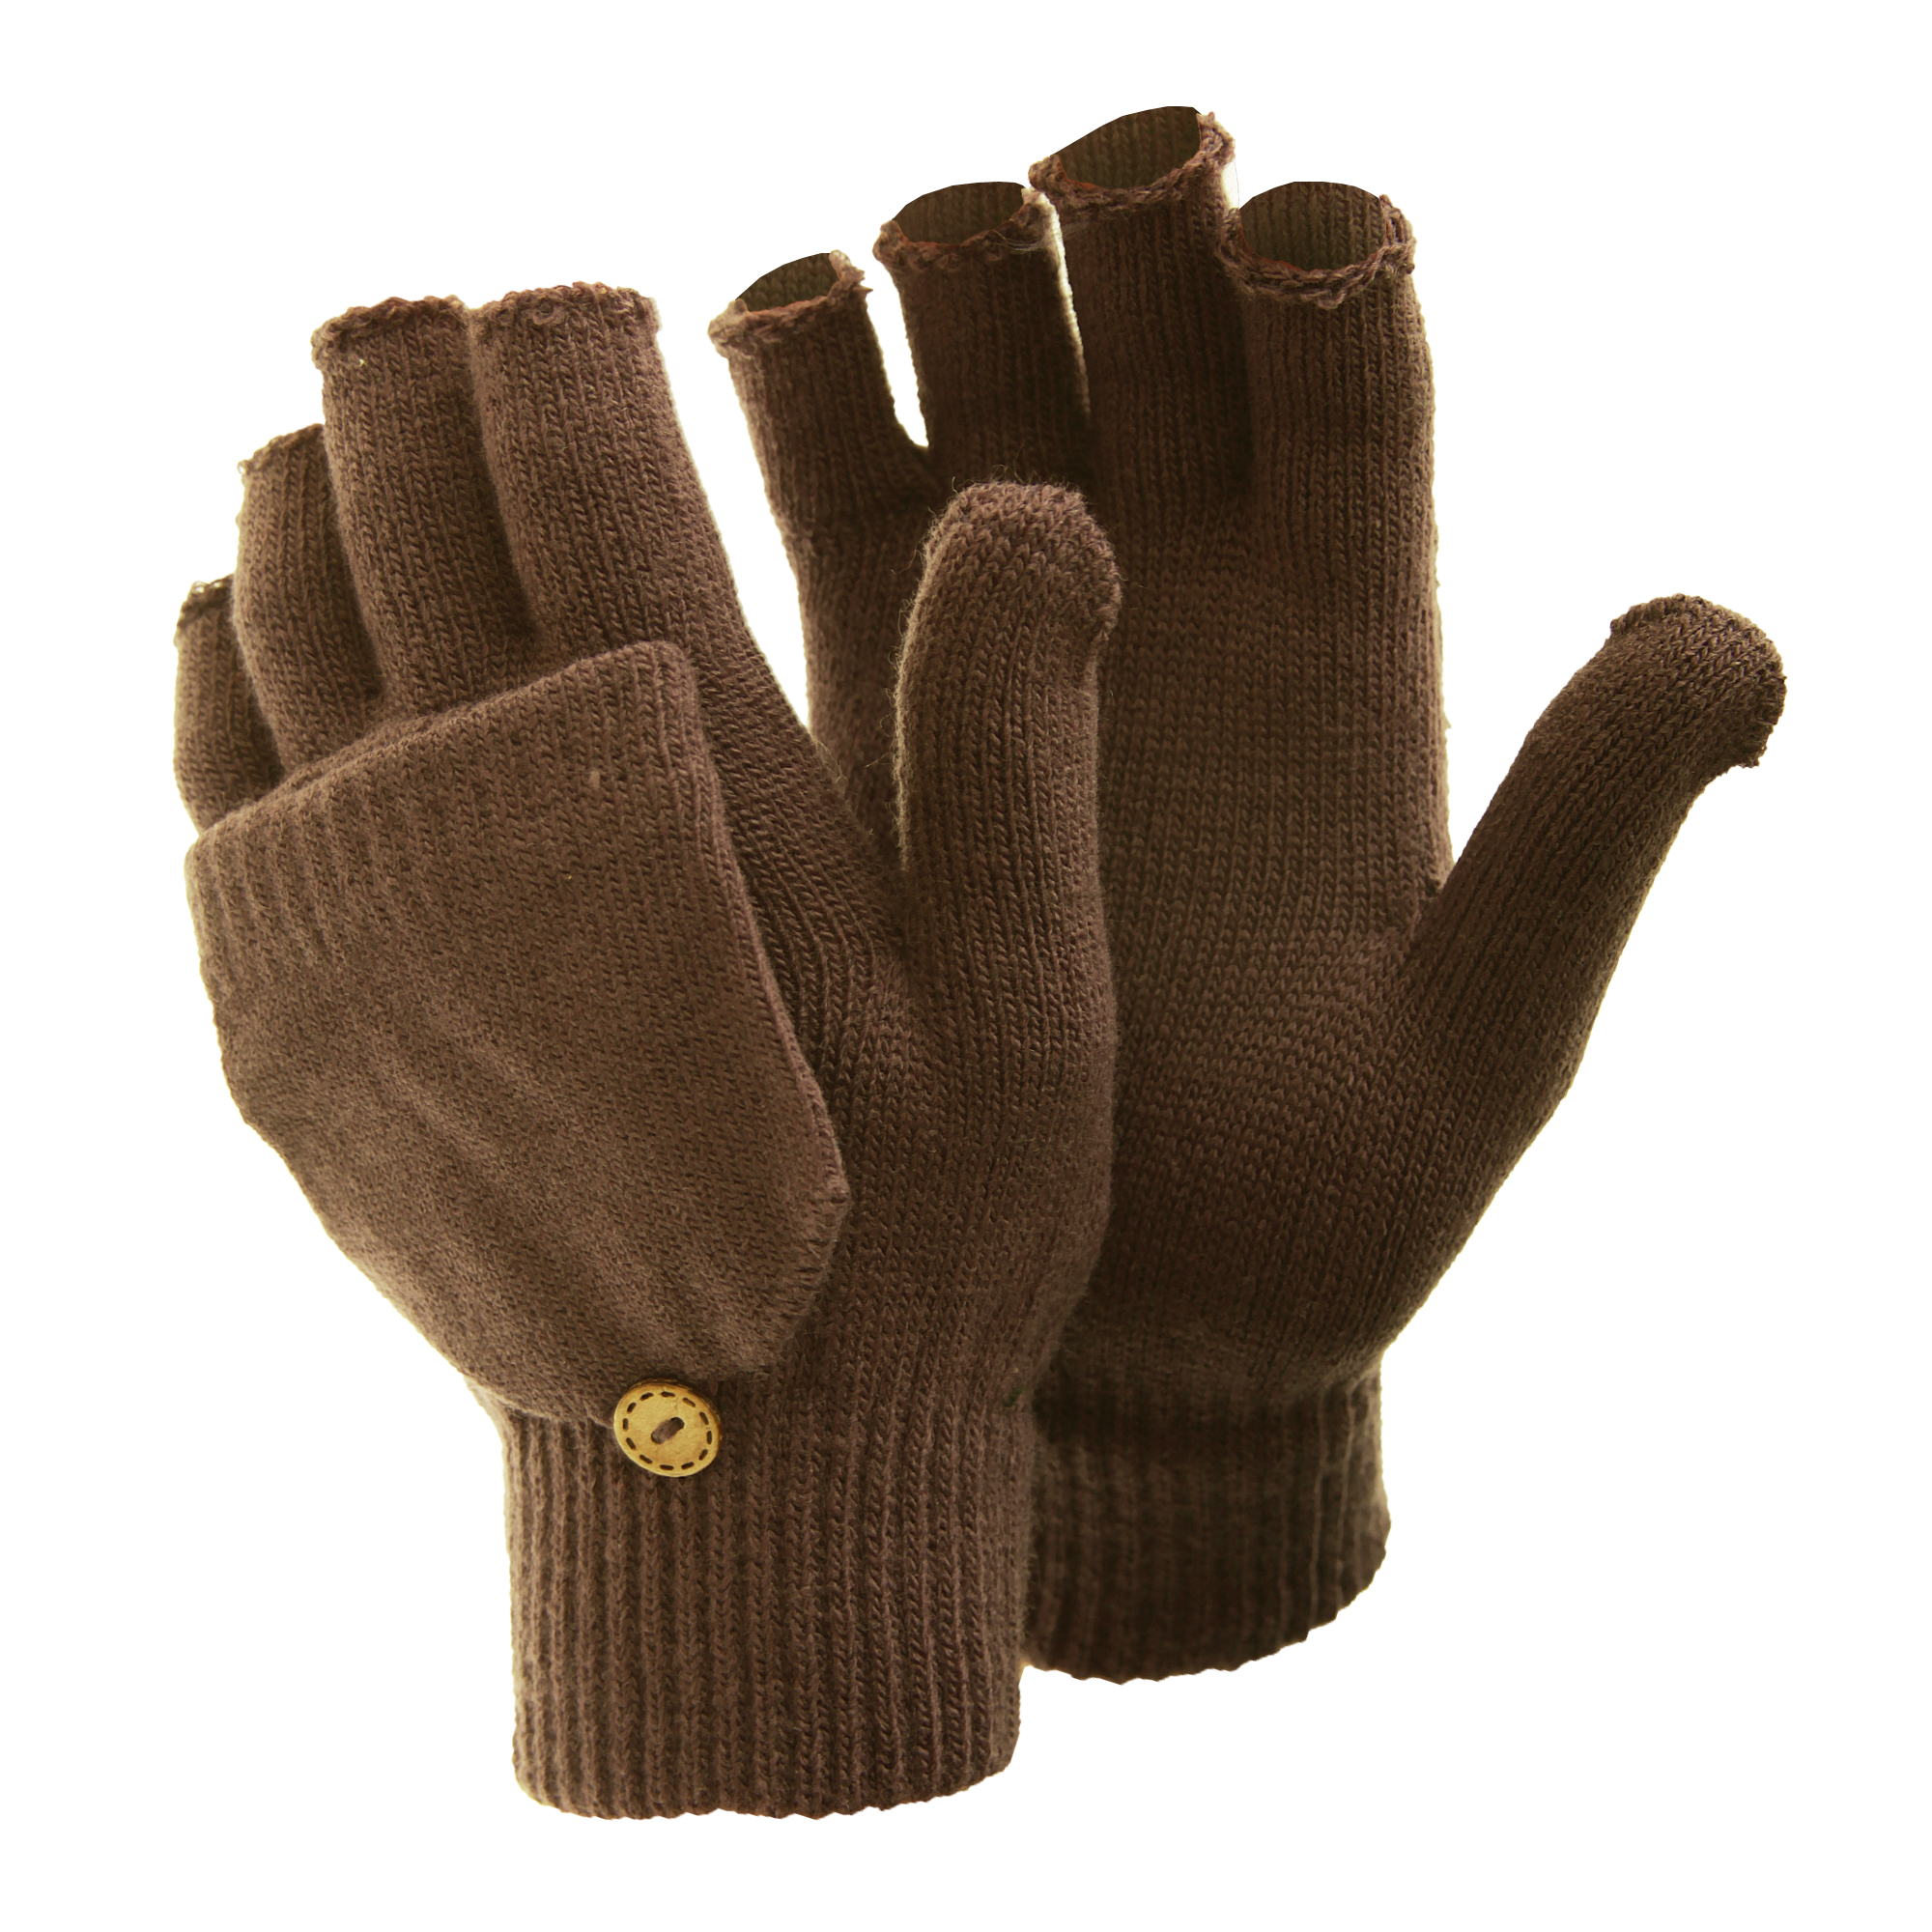 FLOSO Ladies/Womens Winter Capped Fingerless Magic Gloves (One Size) (Brown)